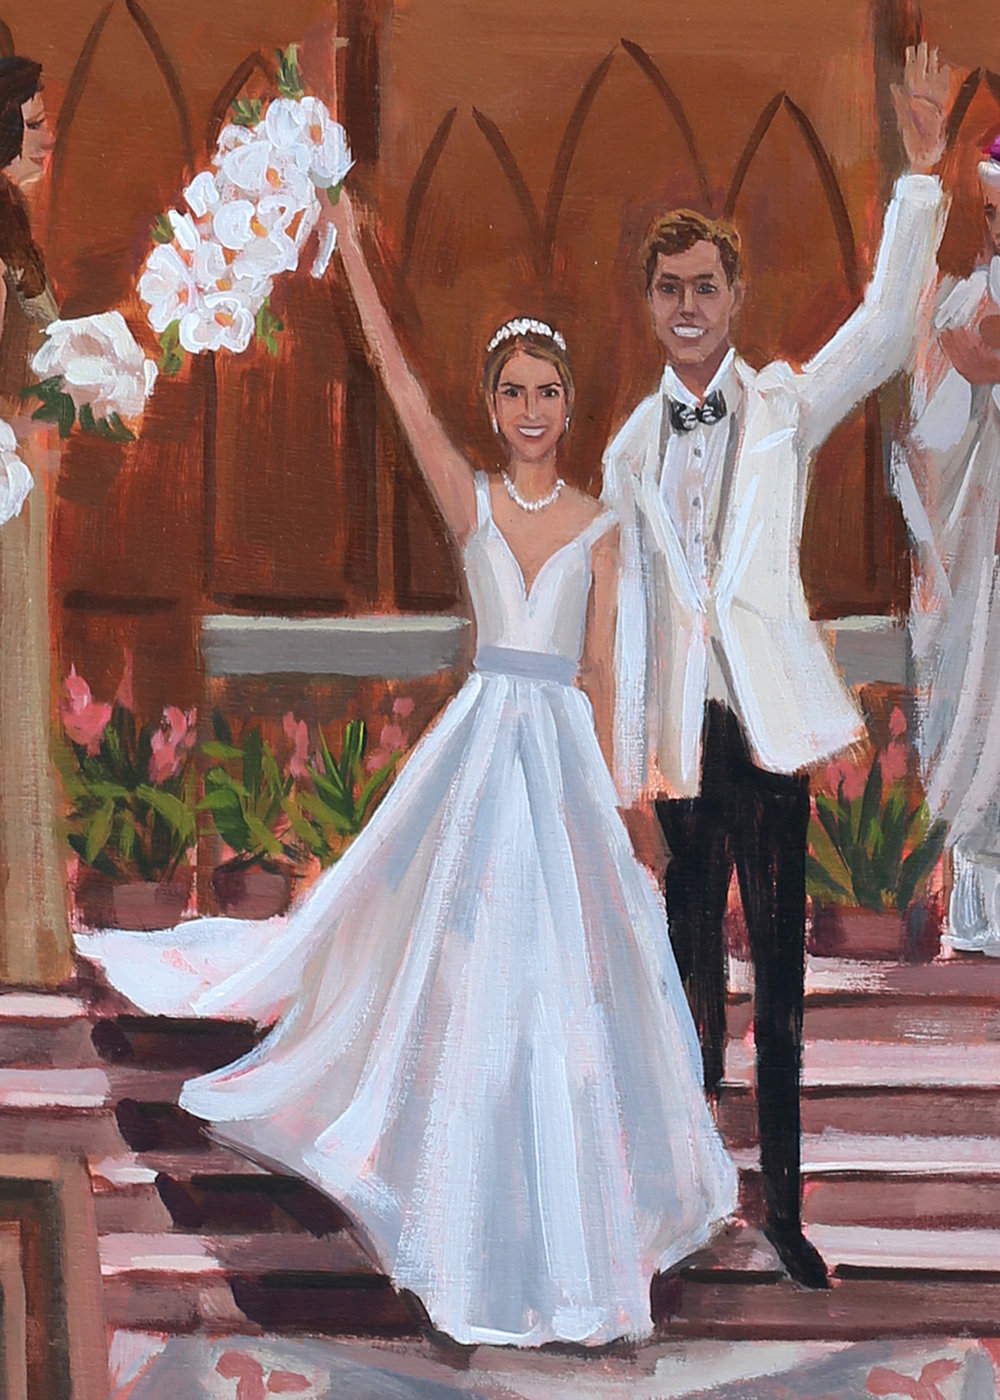 Close up of MC+M's live wedding painting, created by Ben Keys of Wed on Canvas.